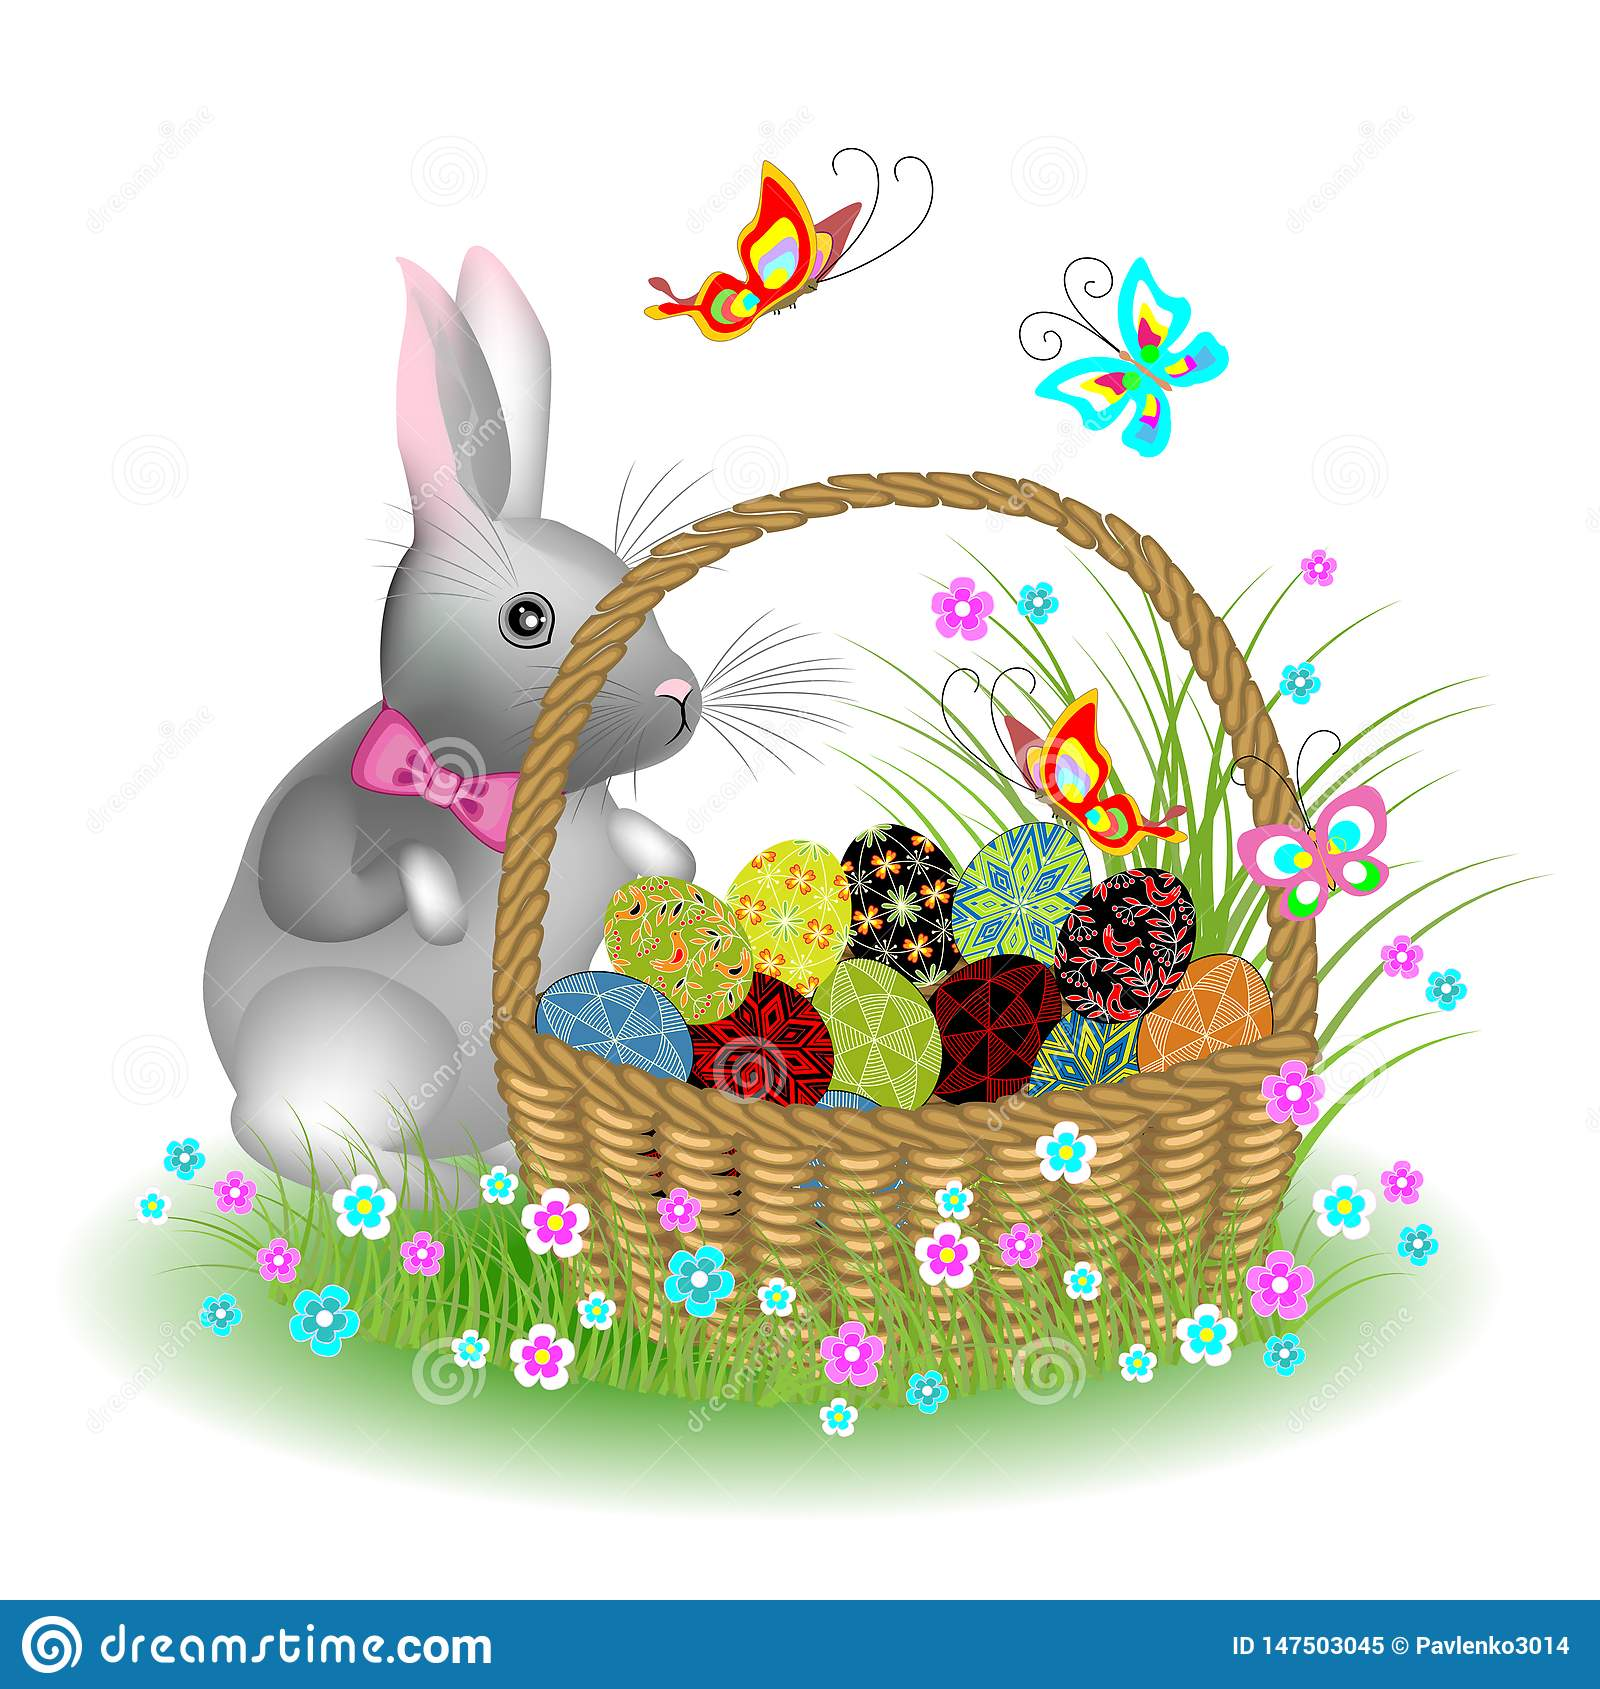 Gray cute rabbit near a basket with Easter eggs. Spring flowers and butterflies. The symbol of Easter in the culture of many